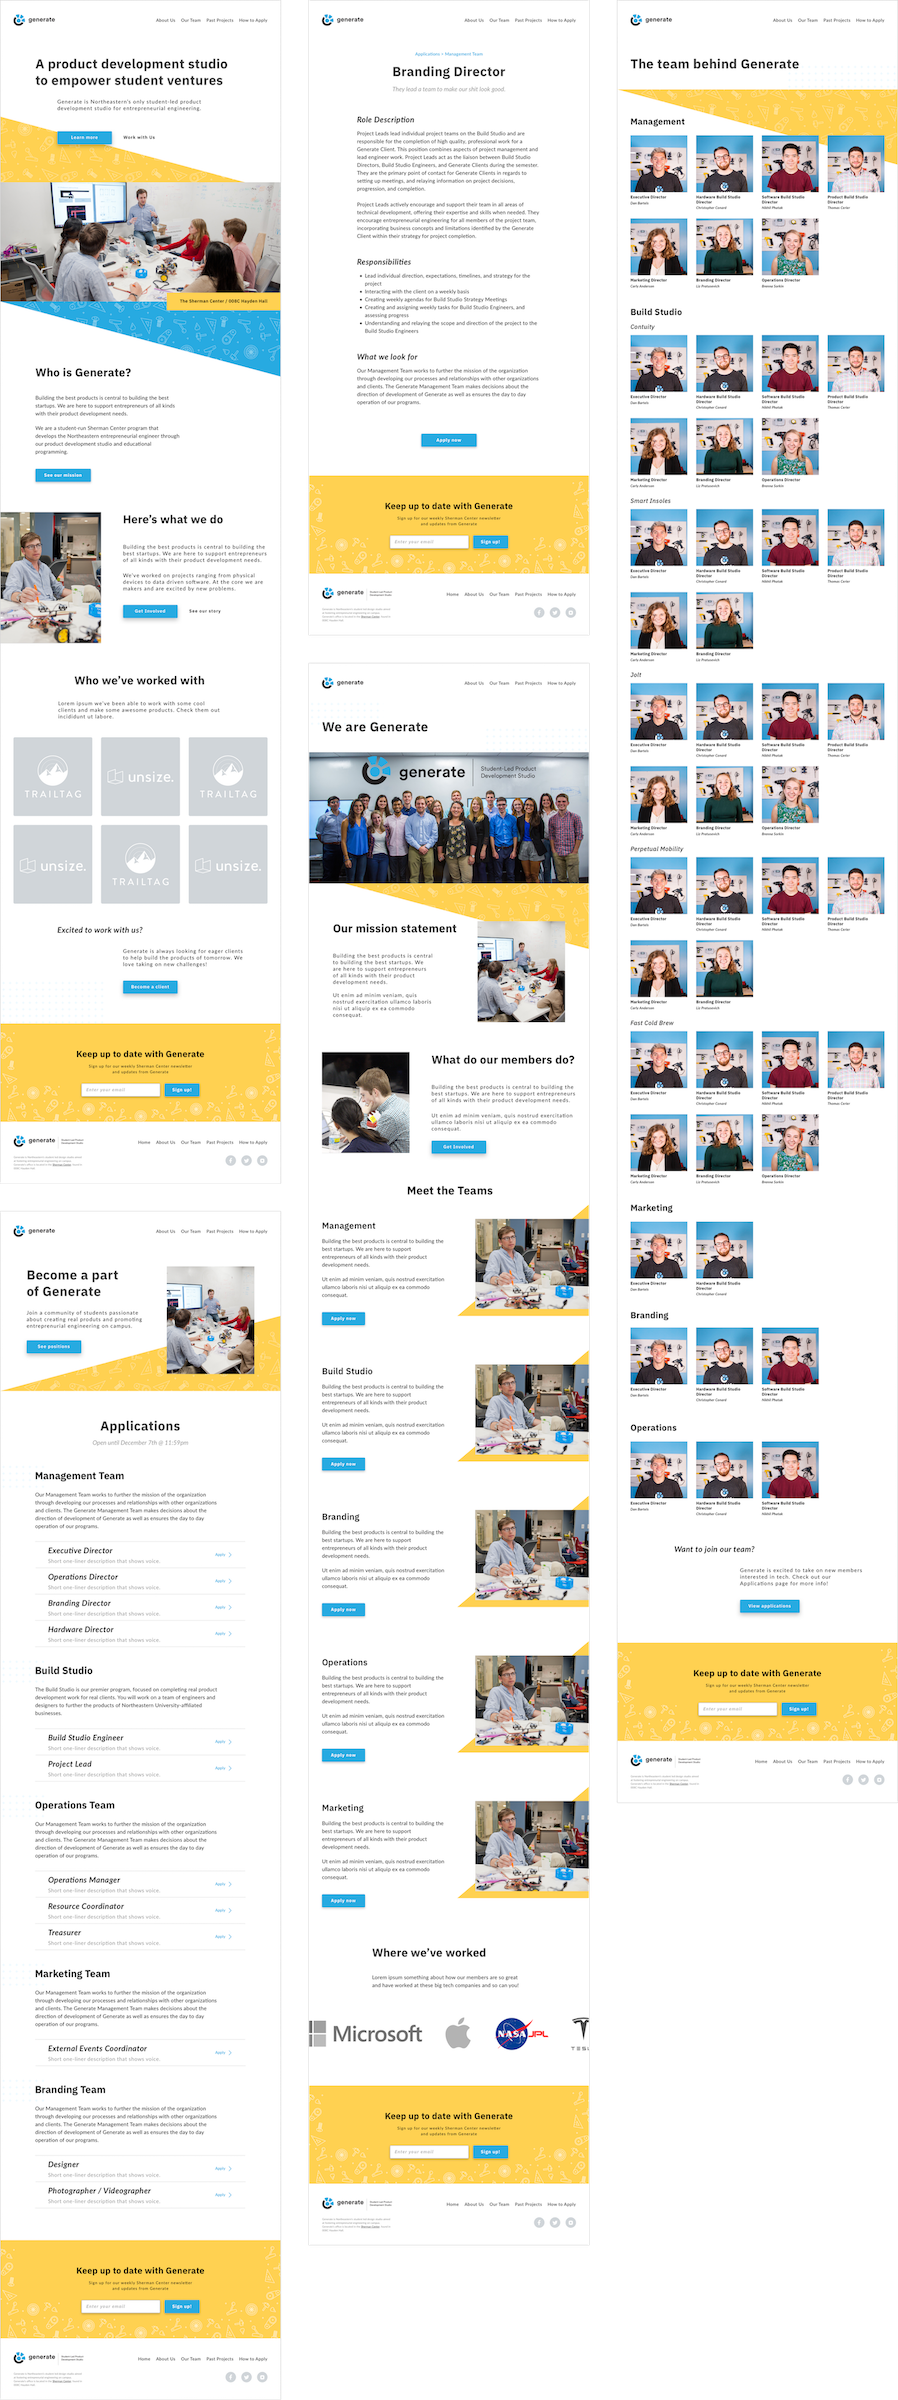 Finalized mockups of the Generate website, complete with color, complete UI, and more realistic copy.